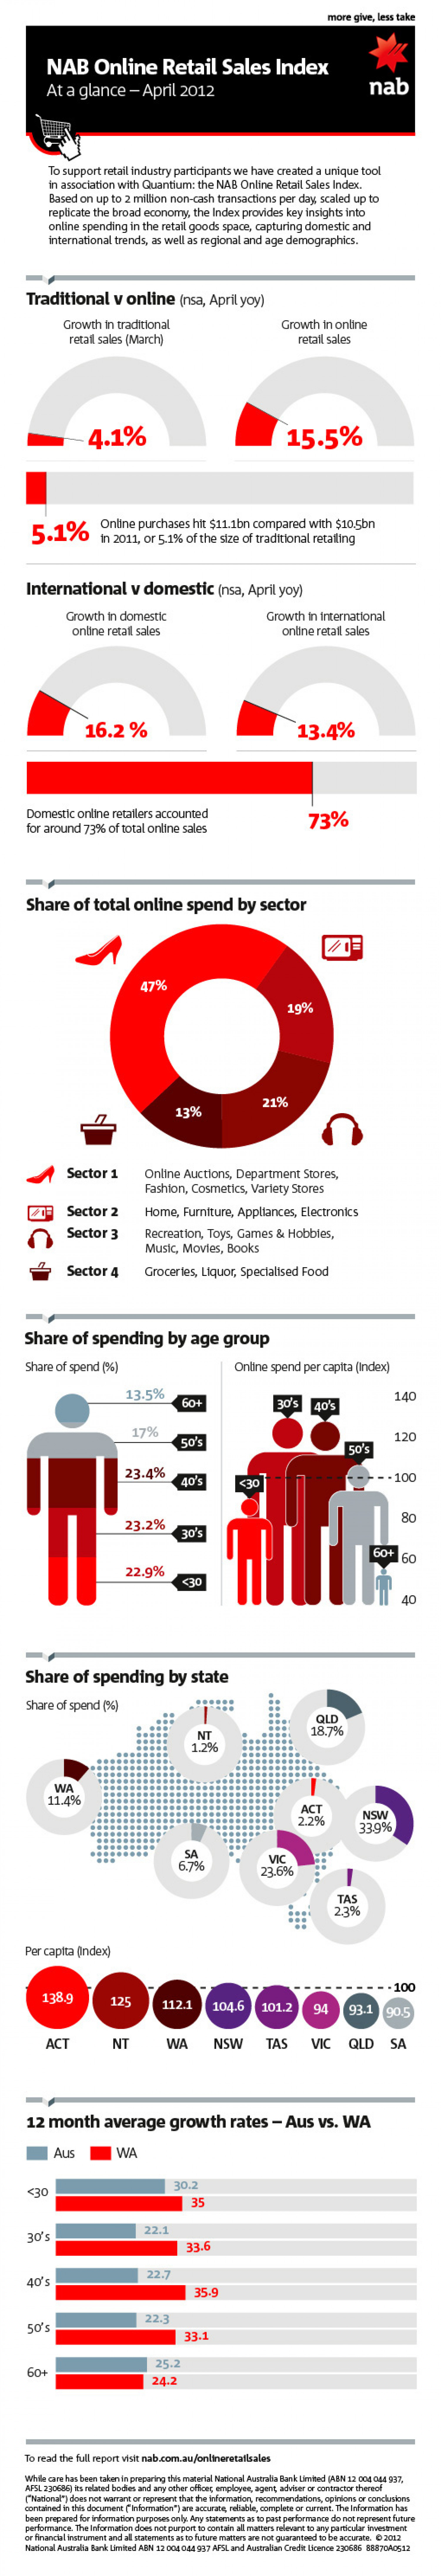 NAB Online Retail Sales Index - April 2012 Infographic